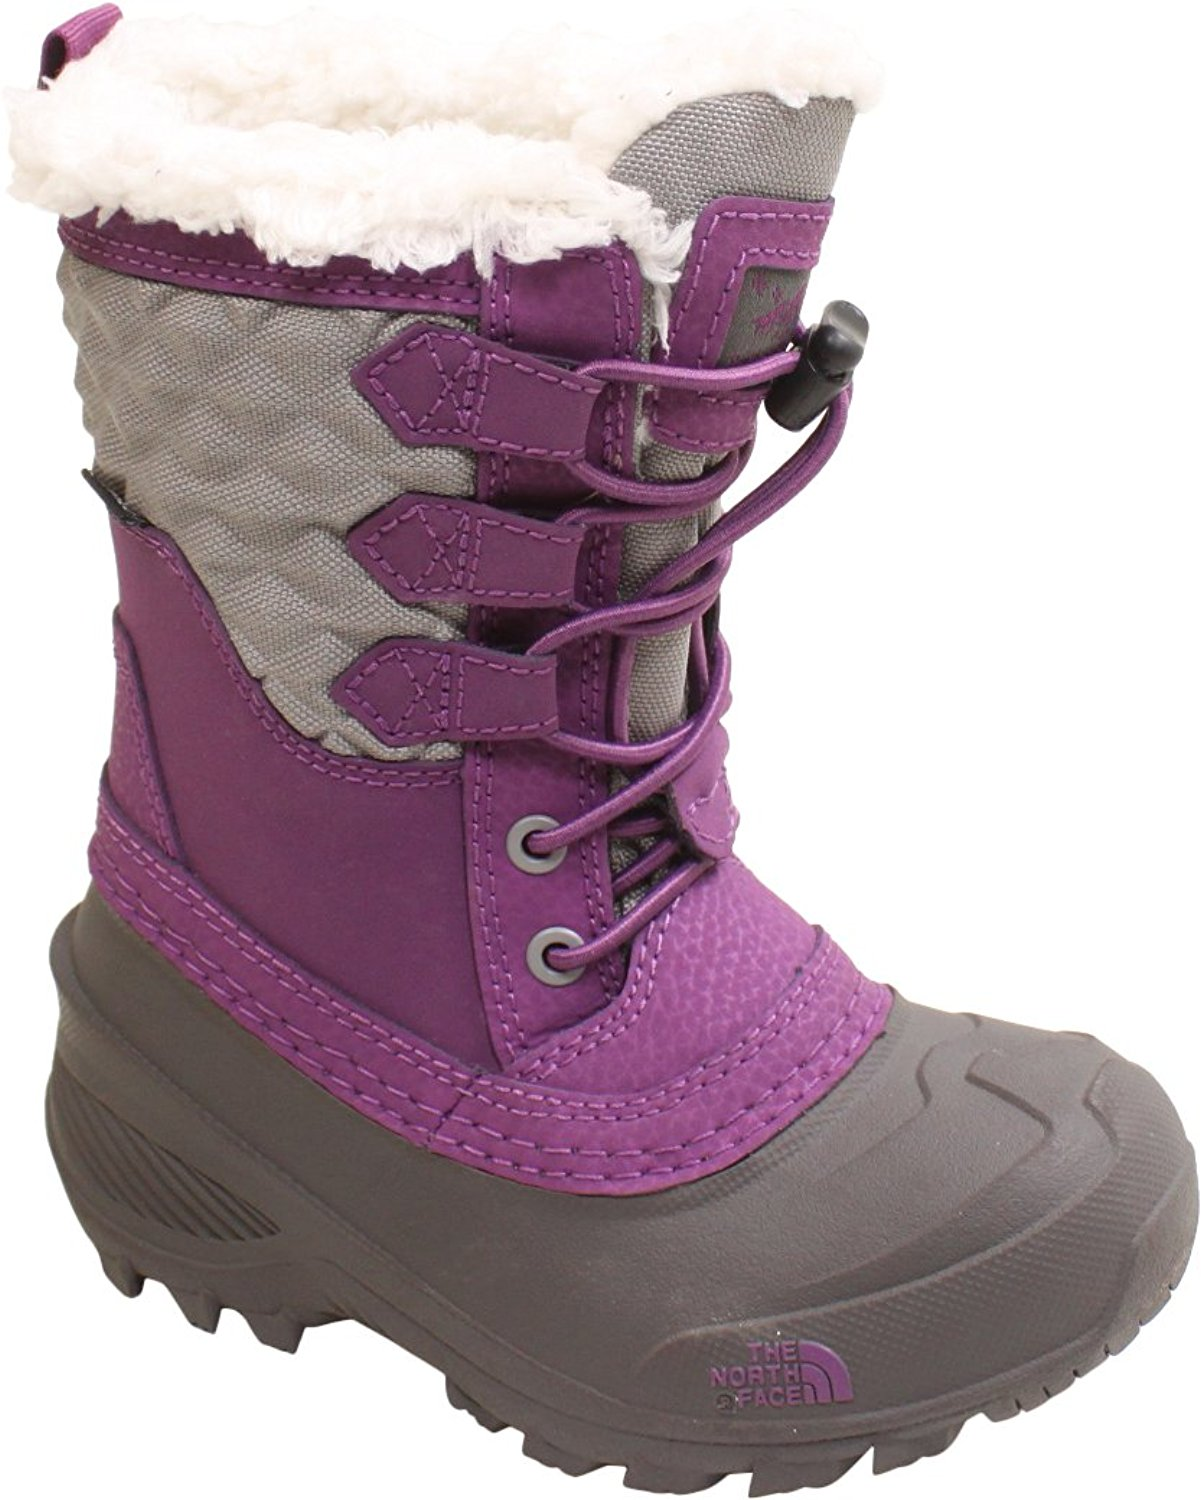 618b68123 Buy THE NORTH FACE Girls' Shellista Lace Novelty Winter Boots in ...